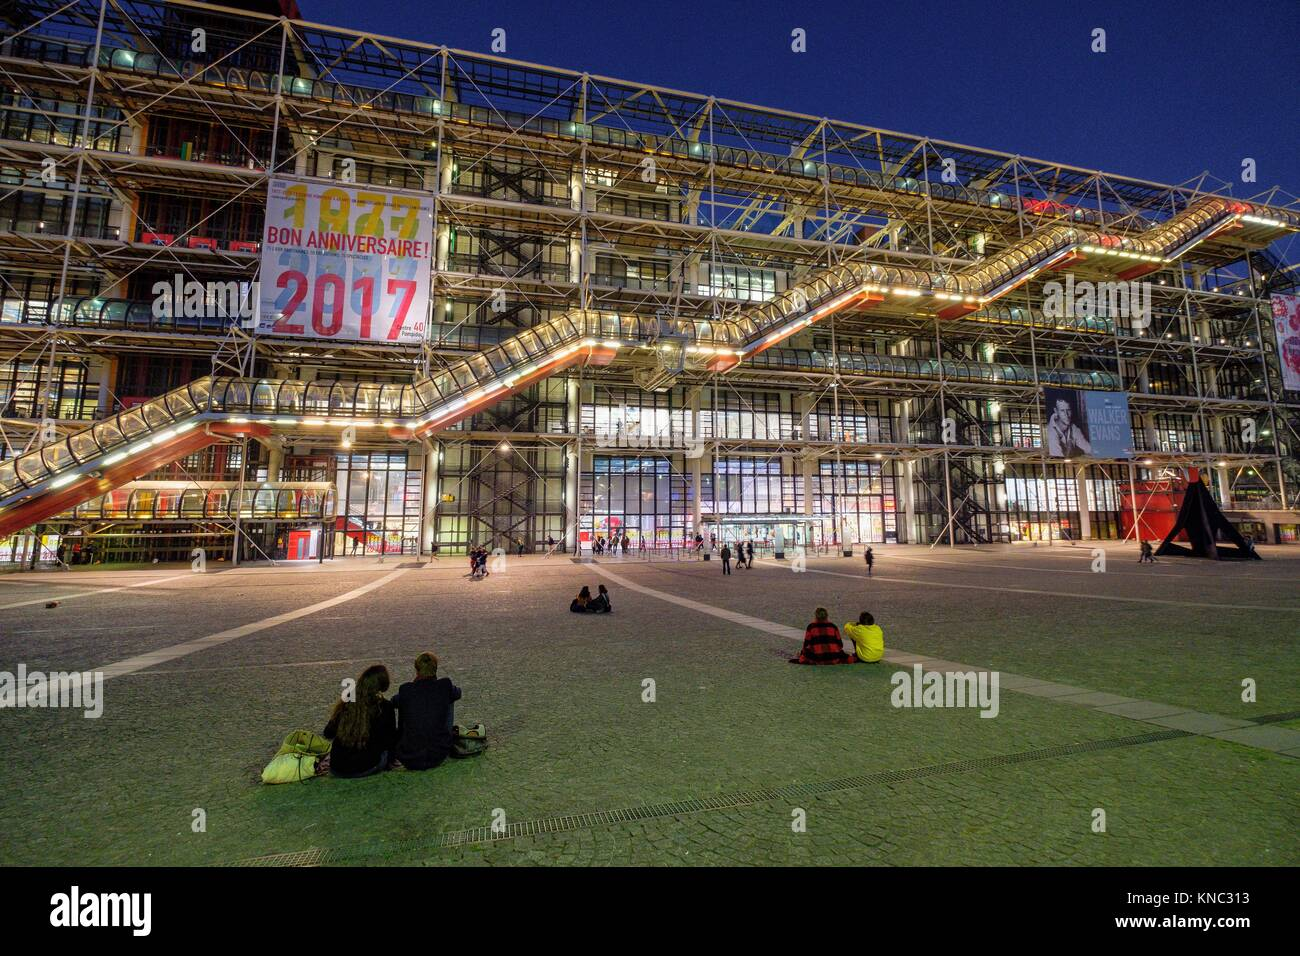 Centre national d'art et de culture Georges-Pompidou, Paris, France - Stock Image